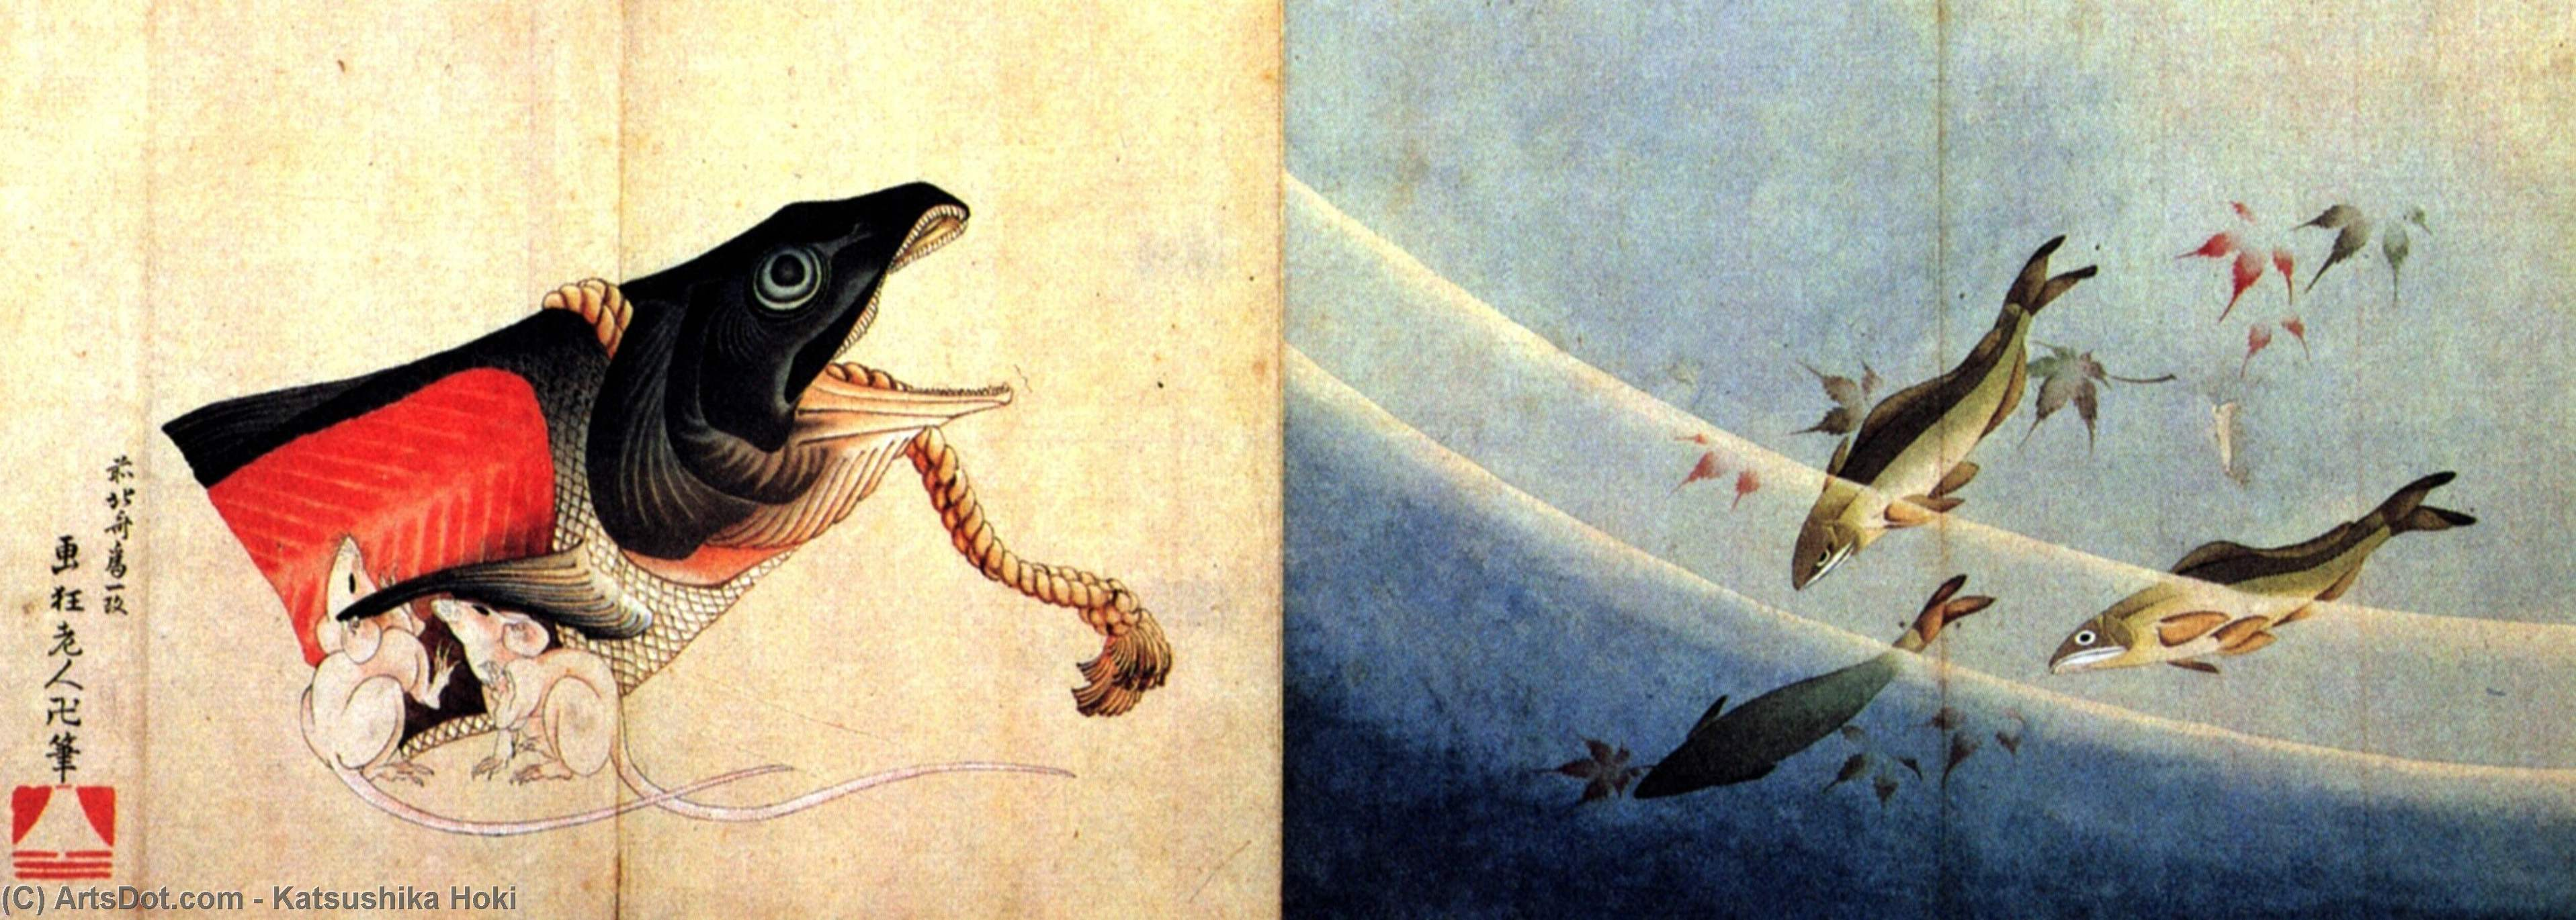 Salted salmond and mice by Katsushika Hokusai (1760-1849, Japan)